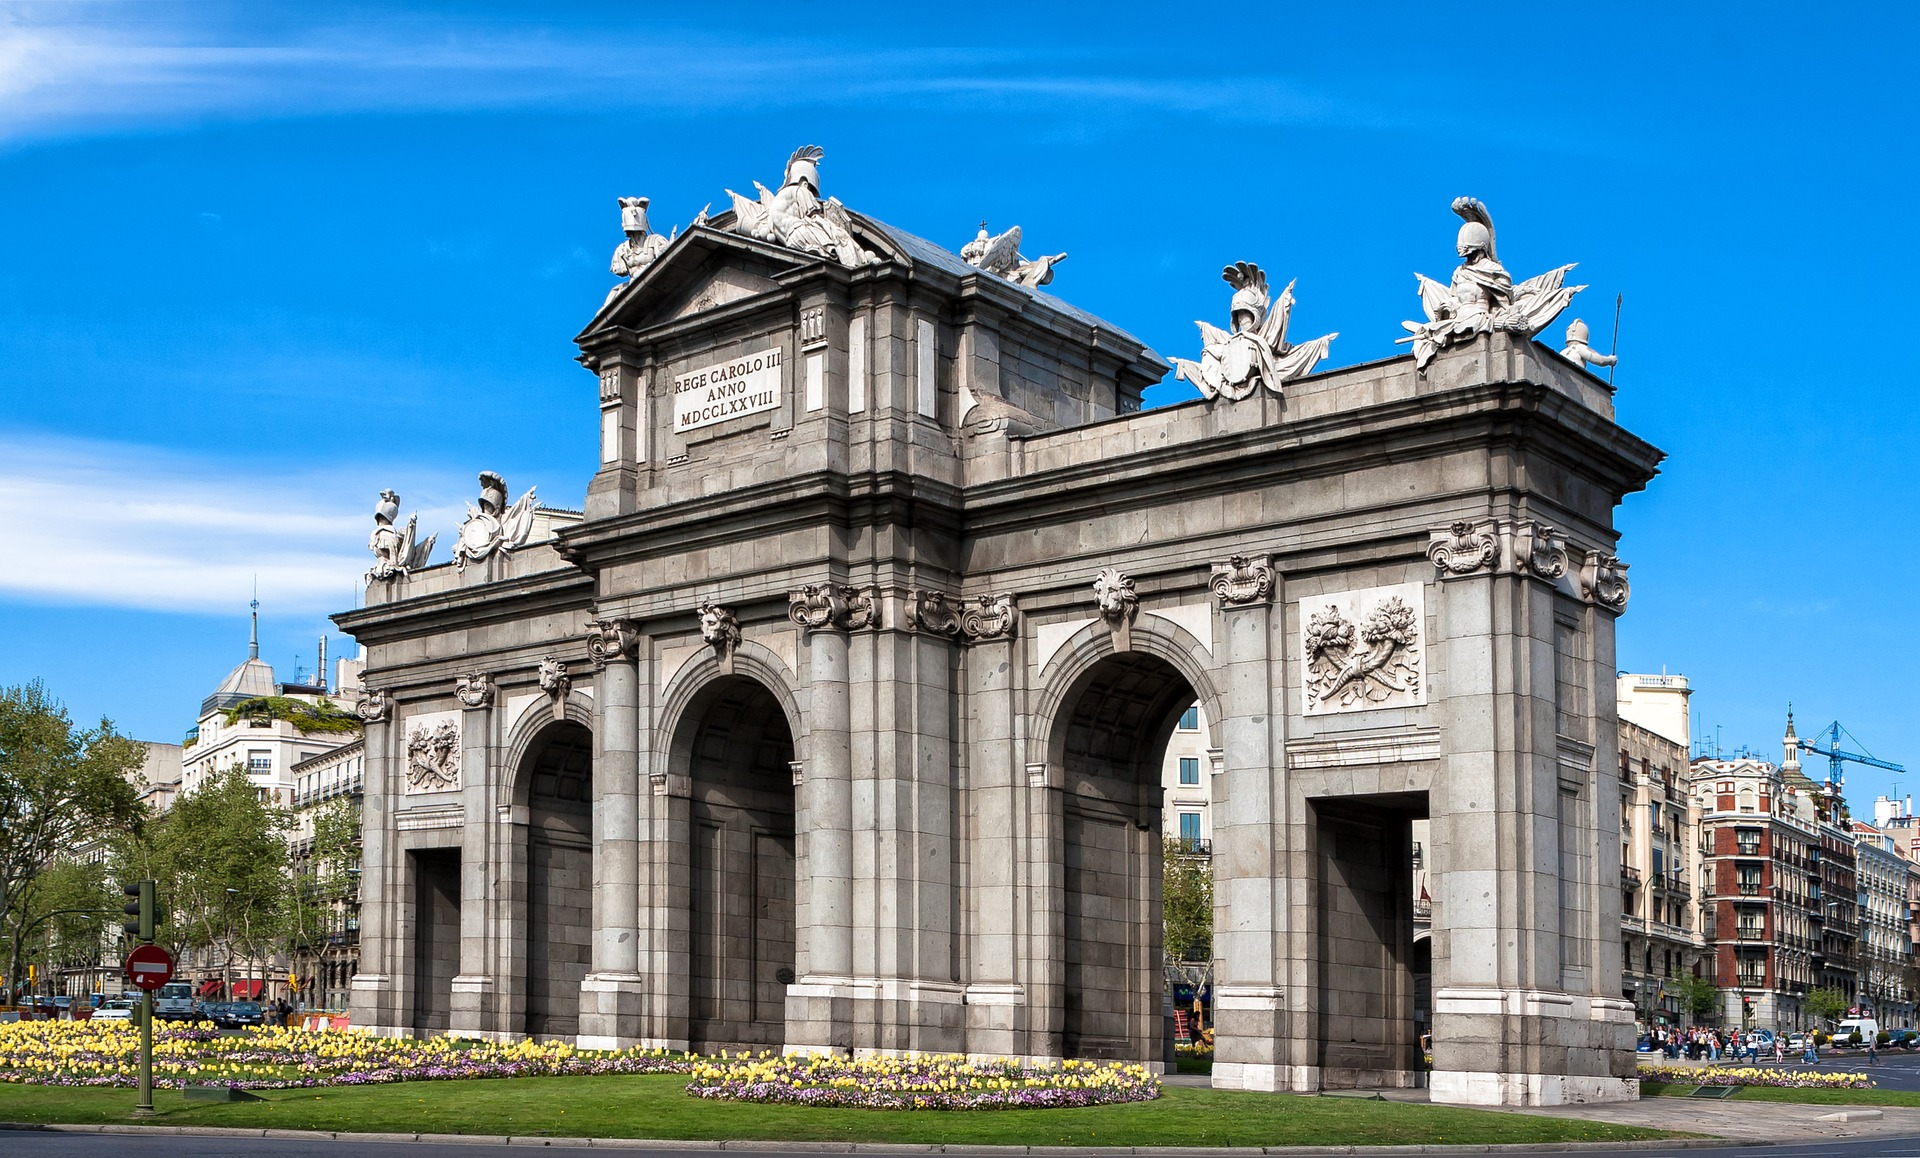 The Puerta de Alcalá, Madrid, Spain